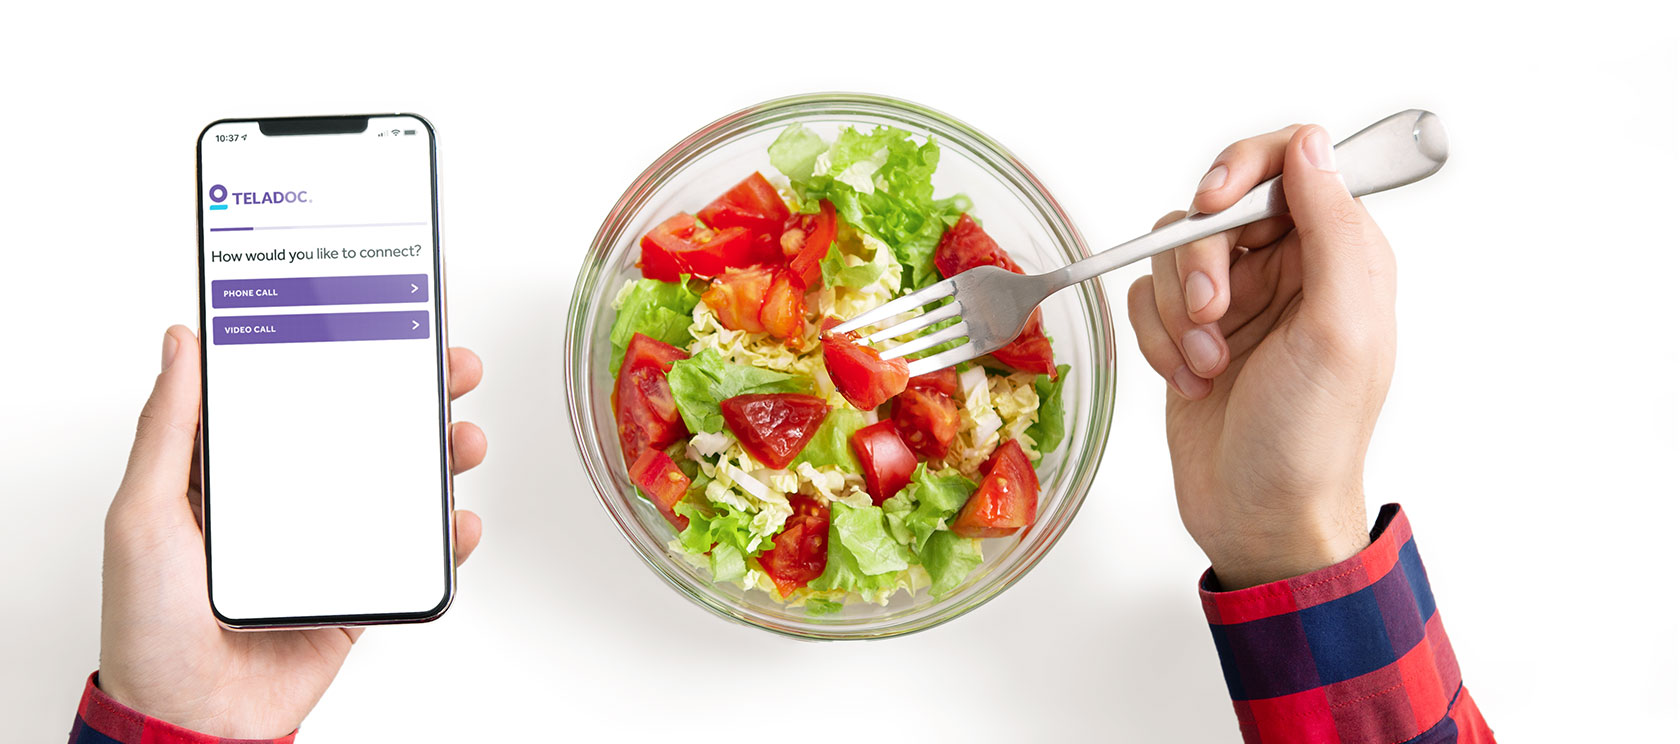 Person eating a salad and using the Teladoc app to schedule a visit